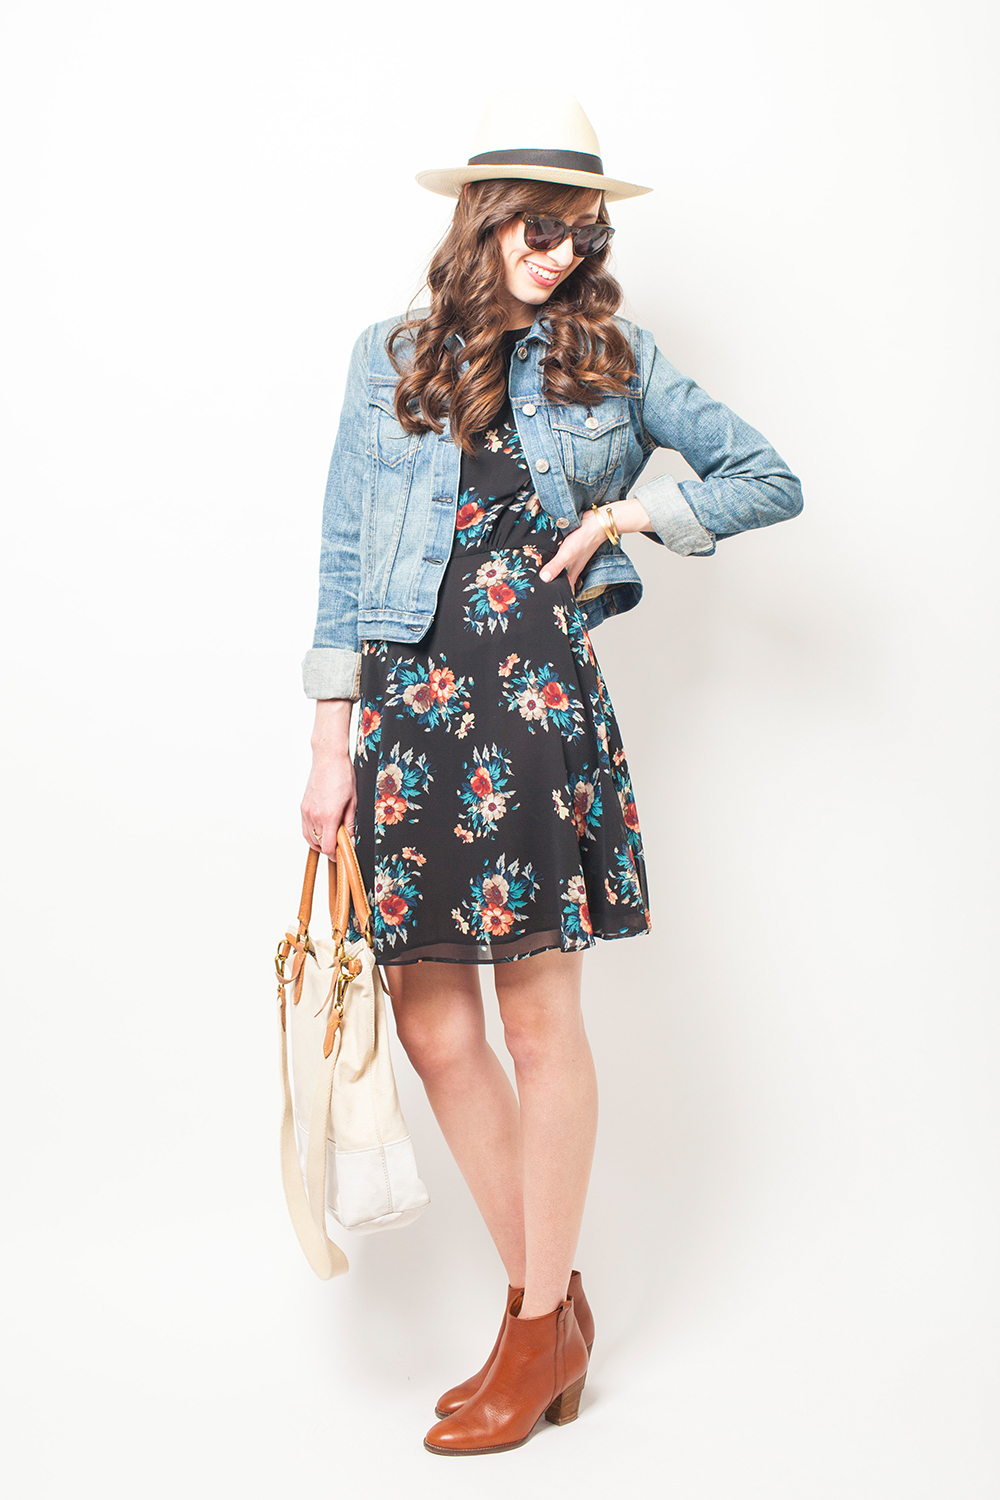 Style Bee in a floral dress and denim jacket.